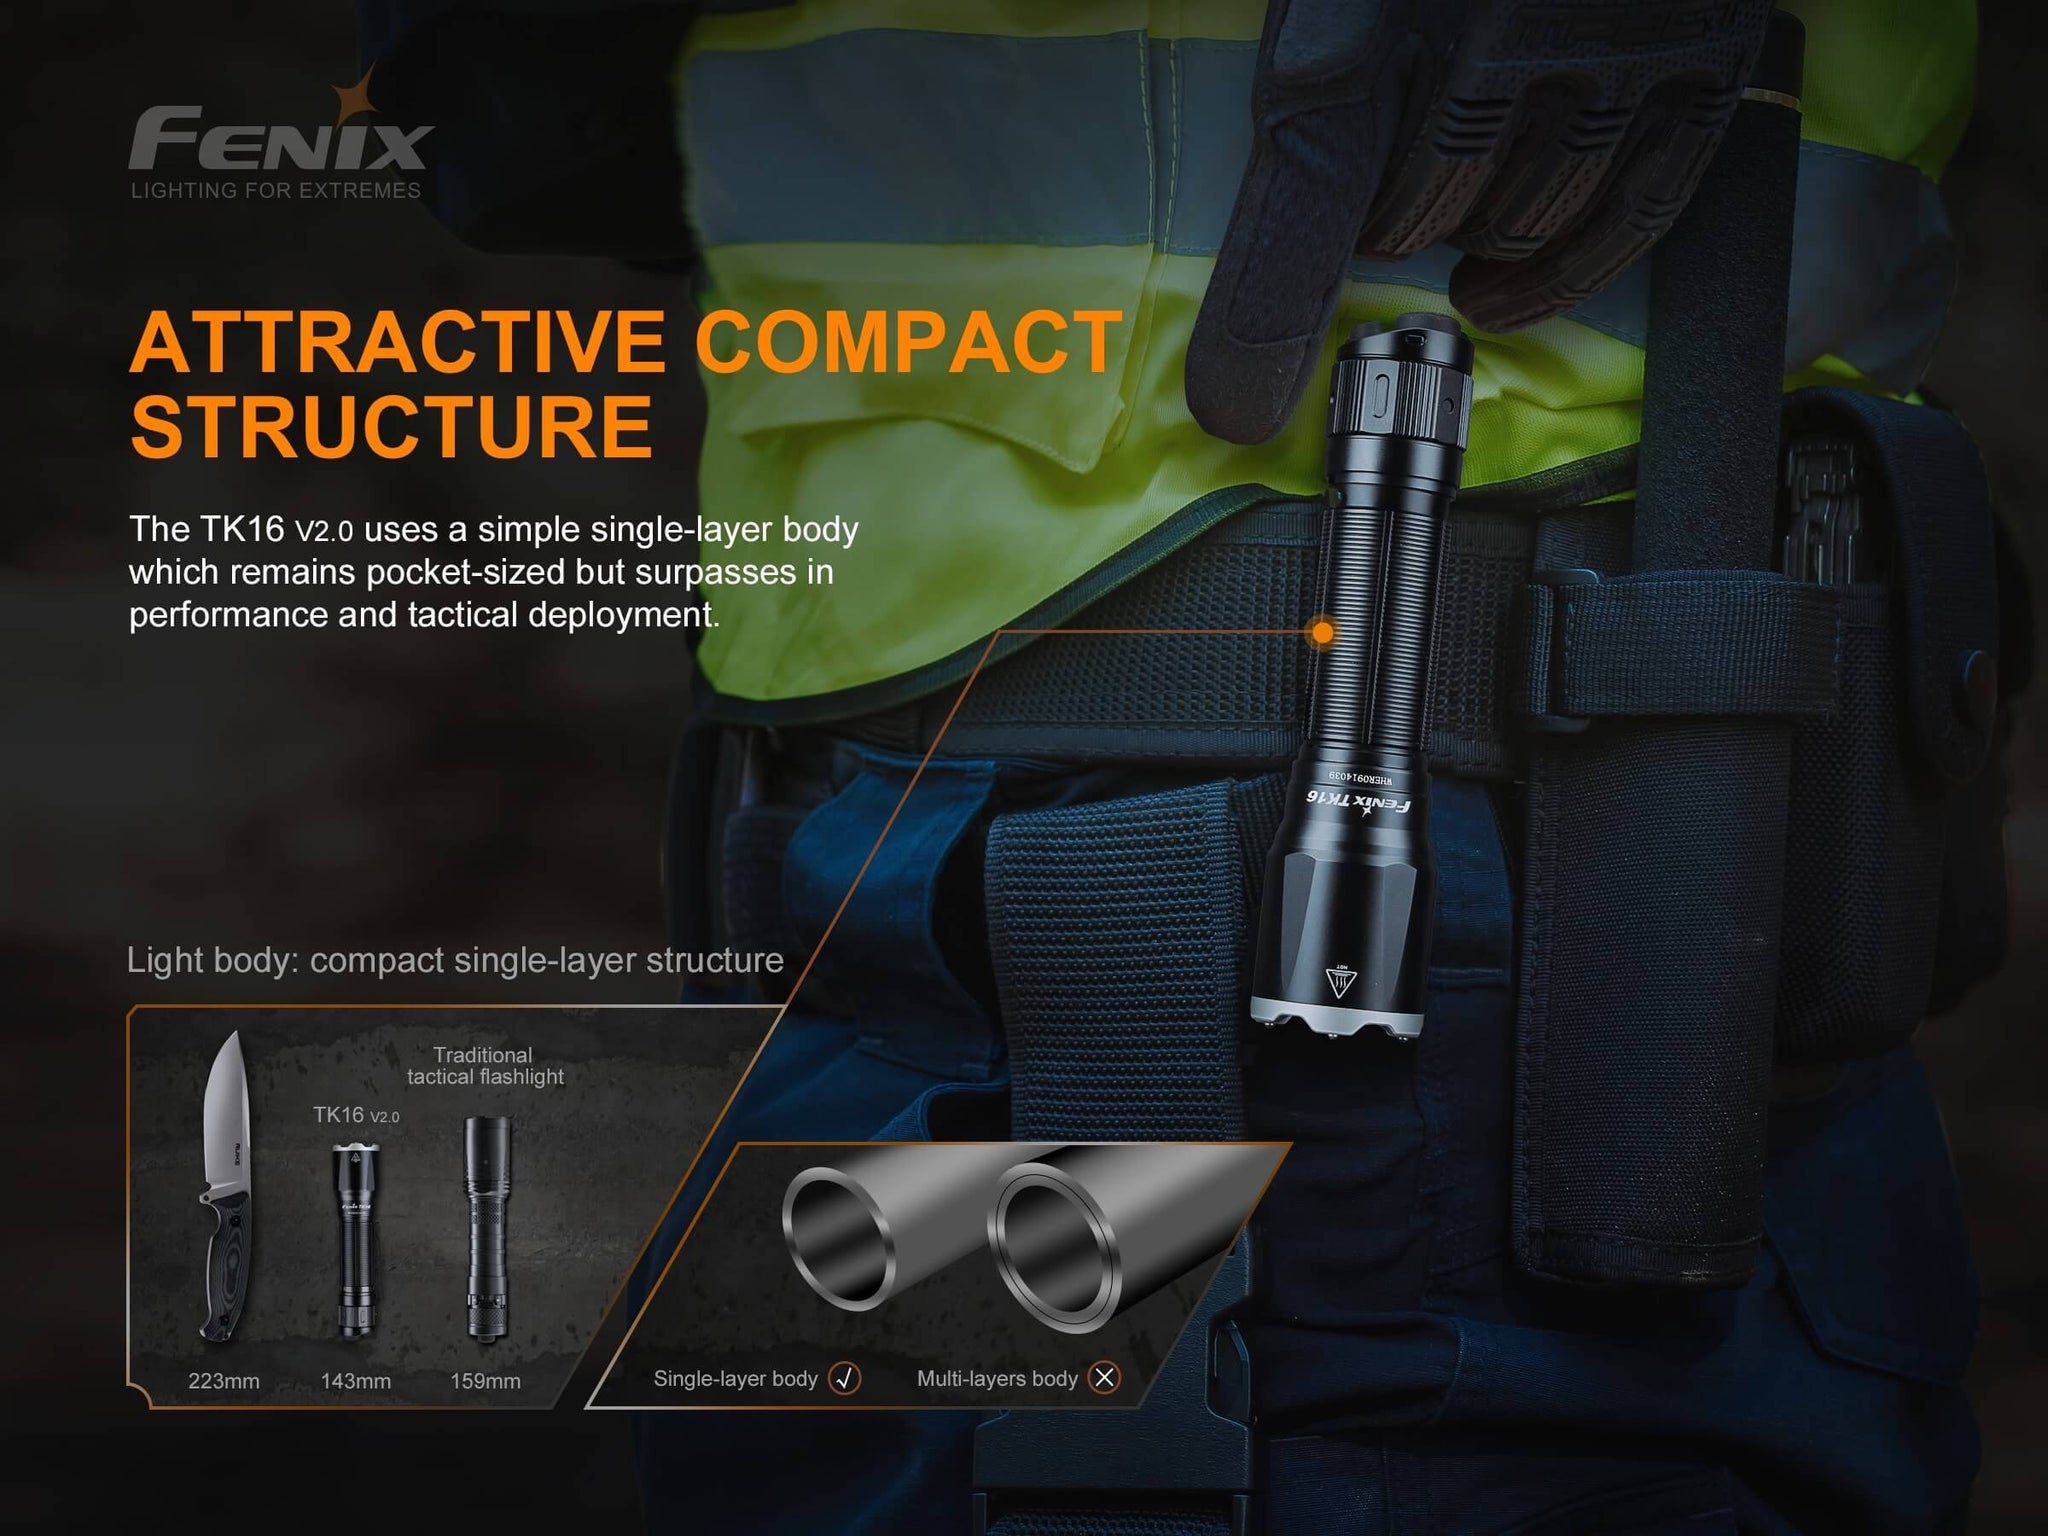 Fenix TK16 V2 LED Torch Light, Rechargeable 3100 Lumens Flashlight, Strong Compact Pocket Size Powerful Torch in India